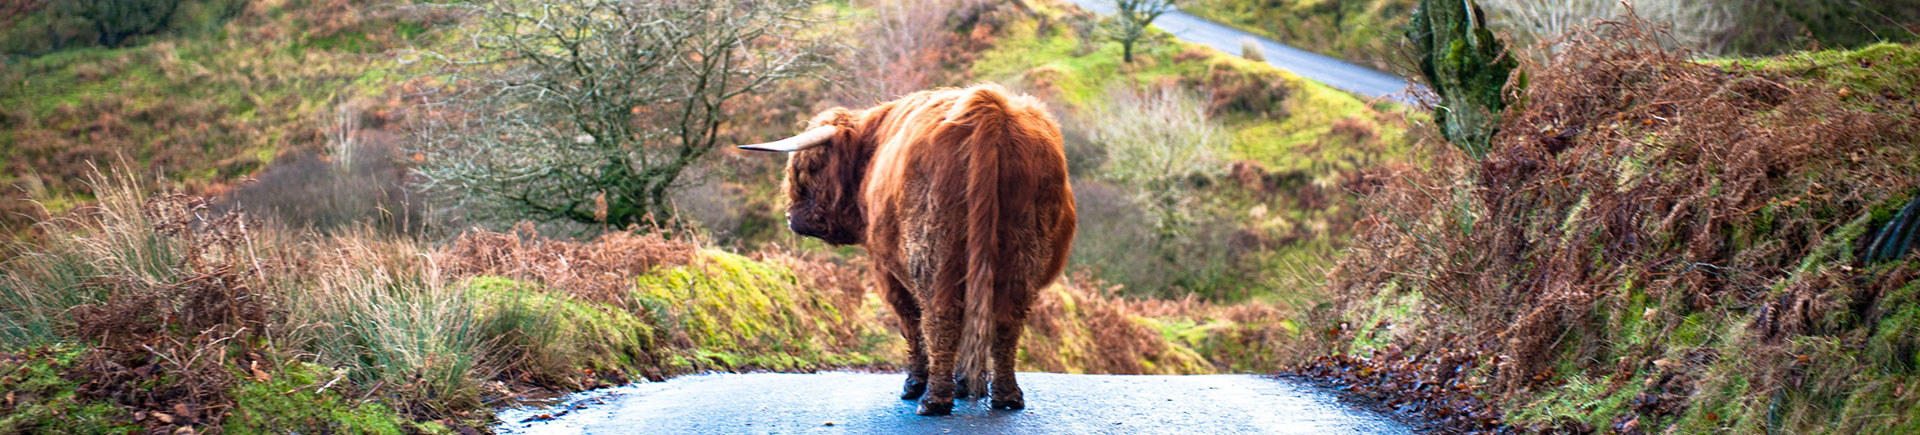 A bull in the middle of a country lane, close to Acres Insurance Brokers head office